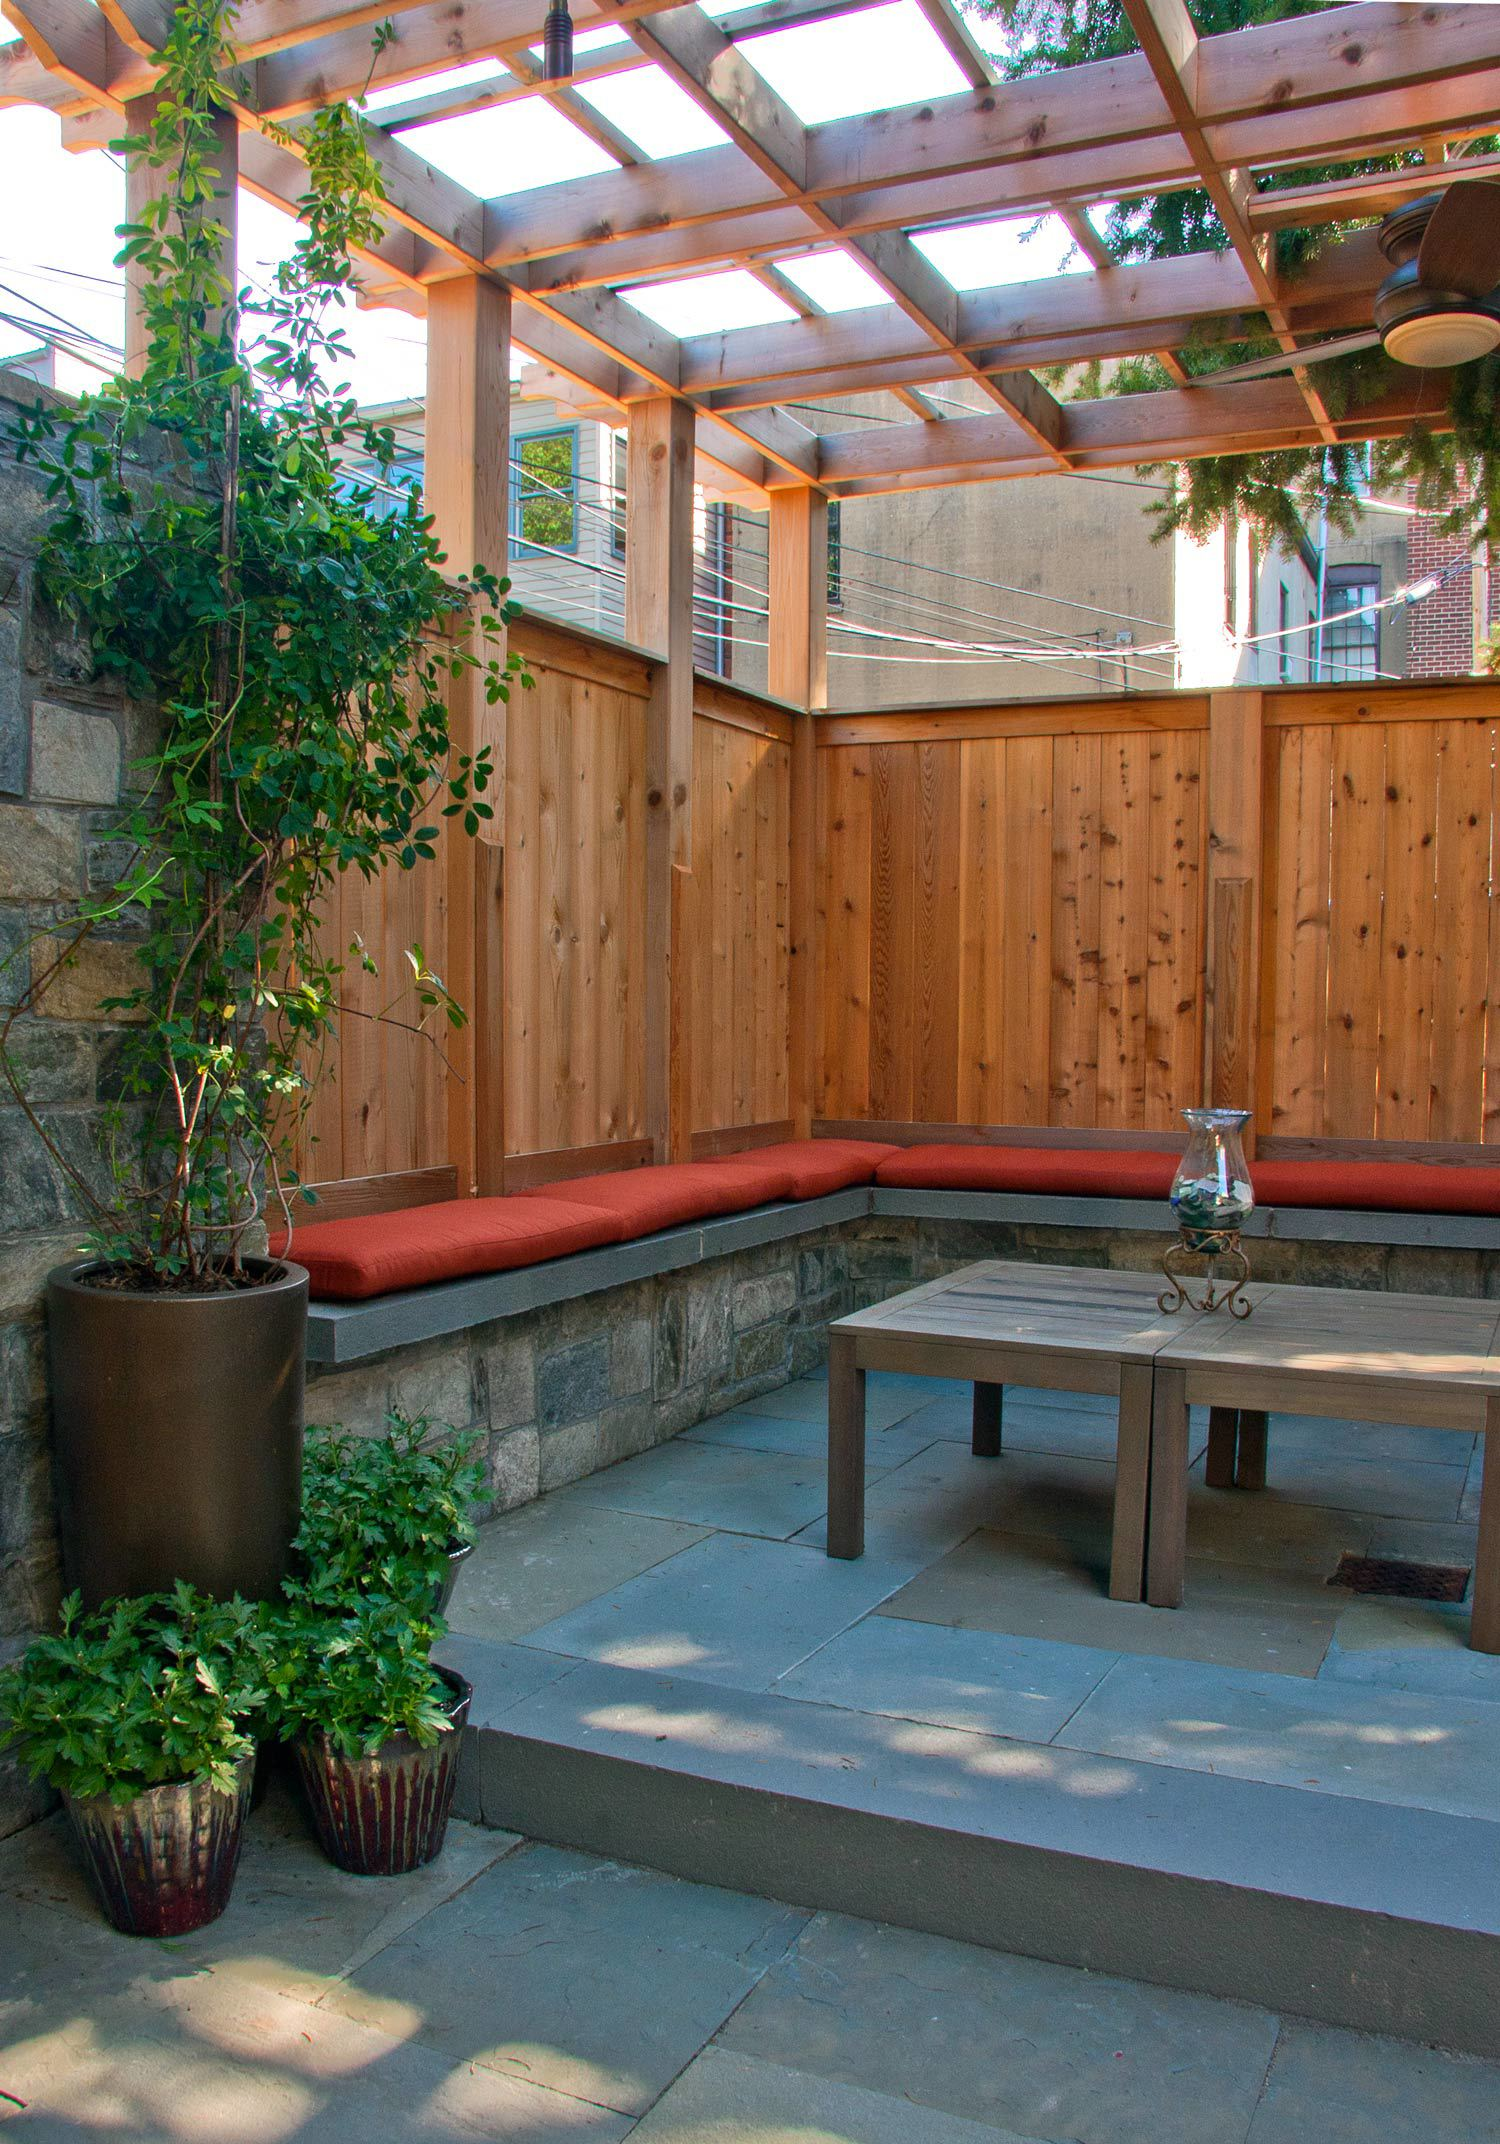 Project Location:  Washington, DC (Capitol Hill)  Completion:  Spring 2012  General Contractor:  Redux Garden & Home  Primary Material Palette:  Carderock stone, western red cedar, bluestone, granite cobbles  Photos By:  George Brown